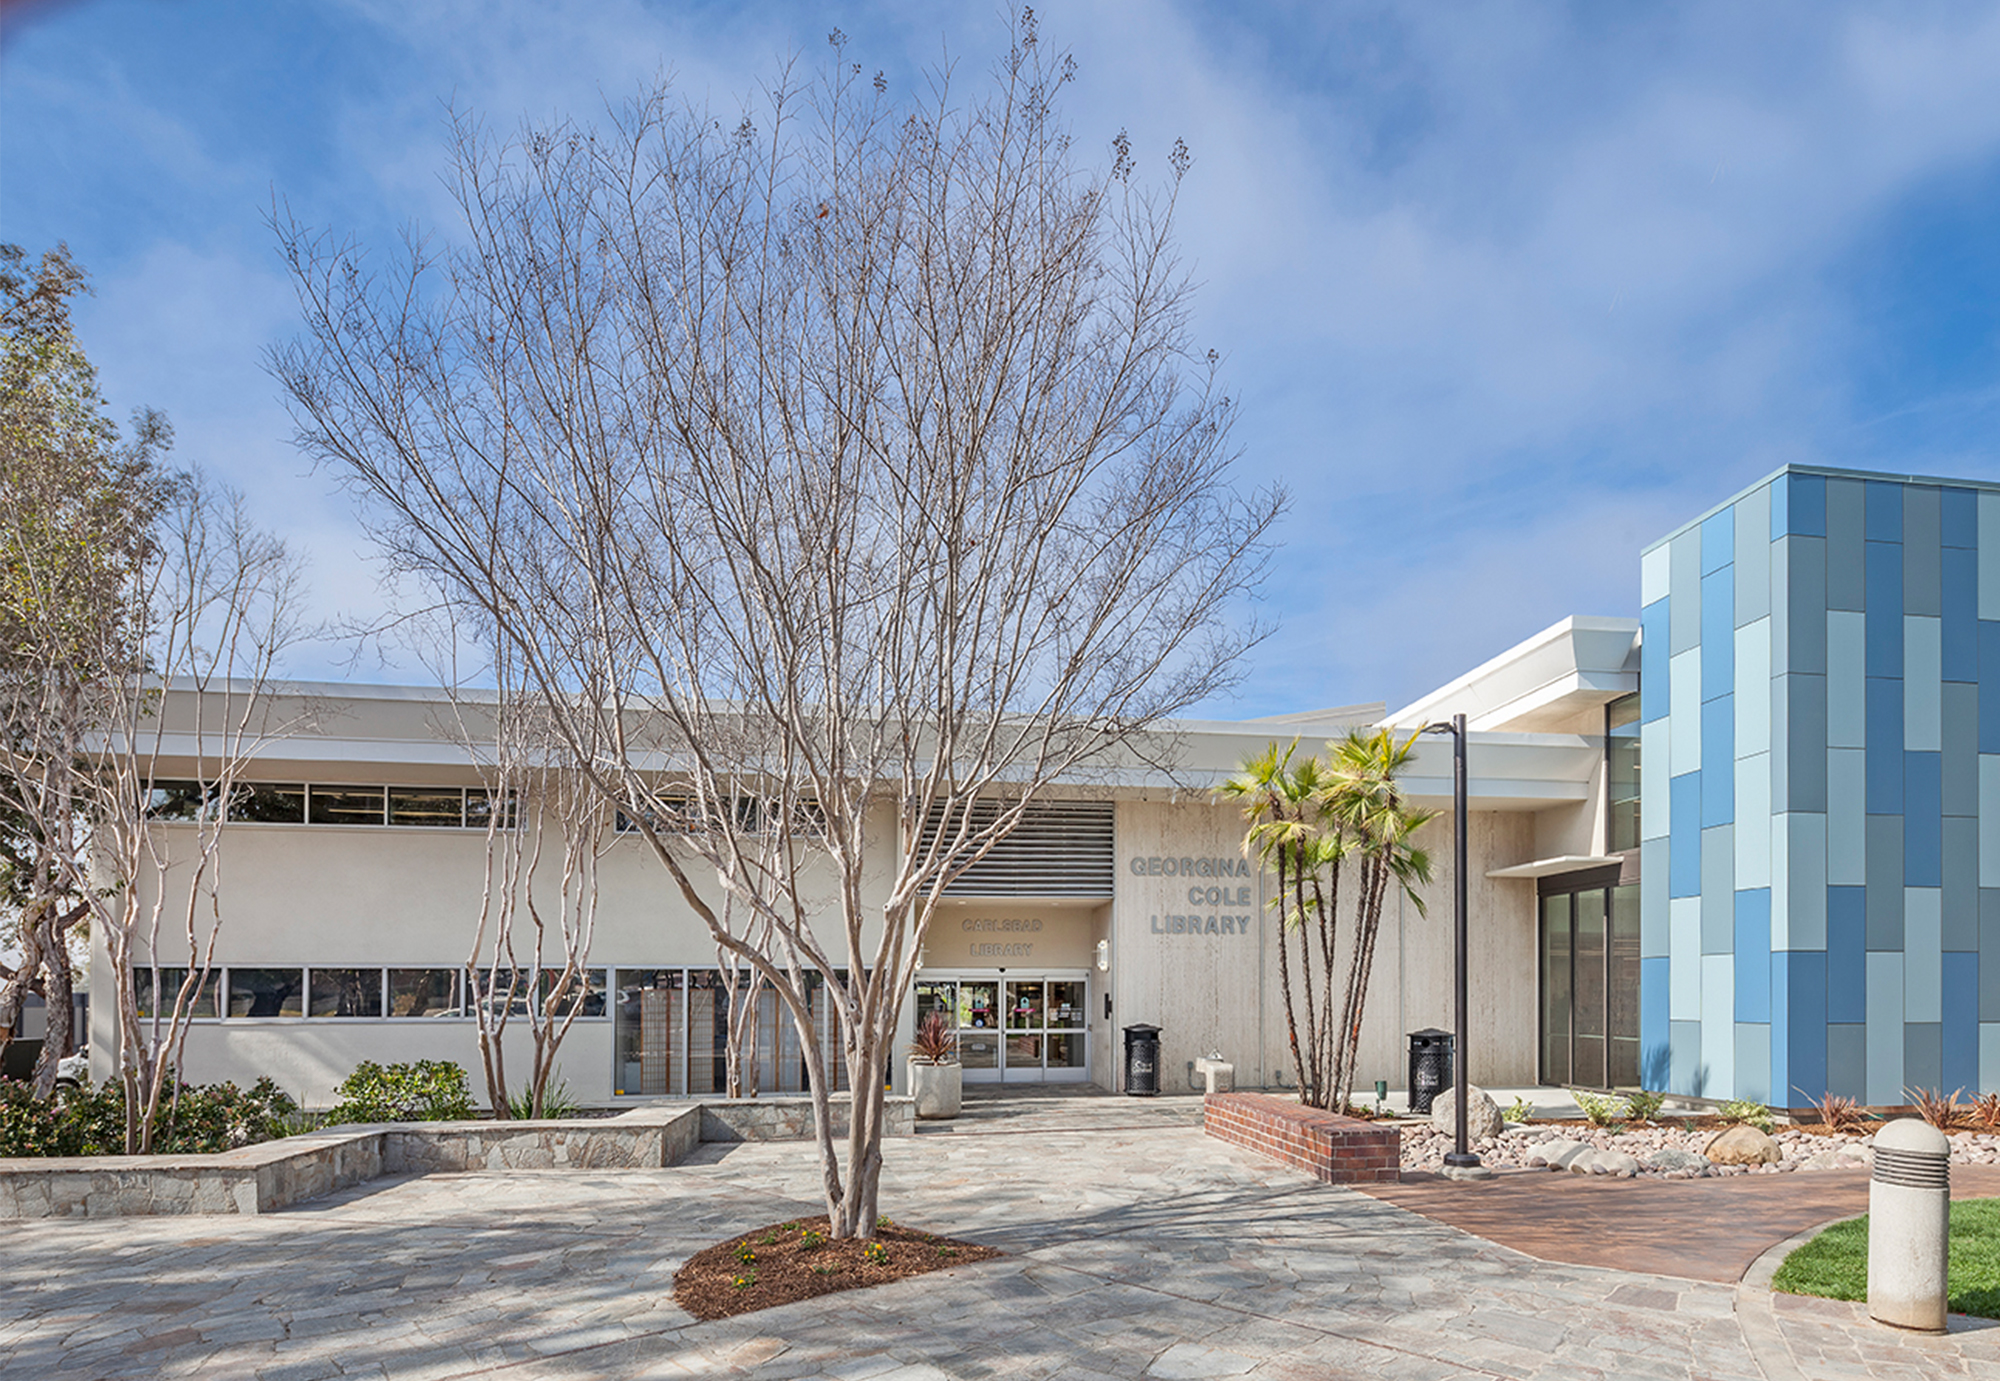 Carlsbad Cole Library exterior plaza approach